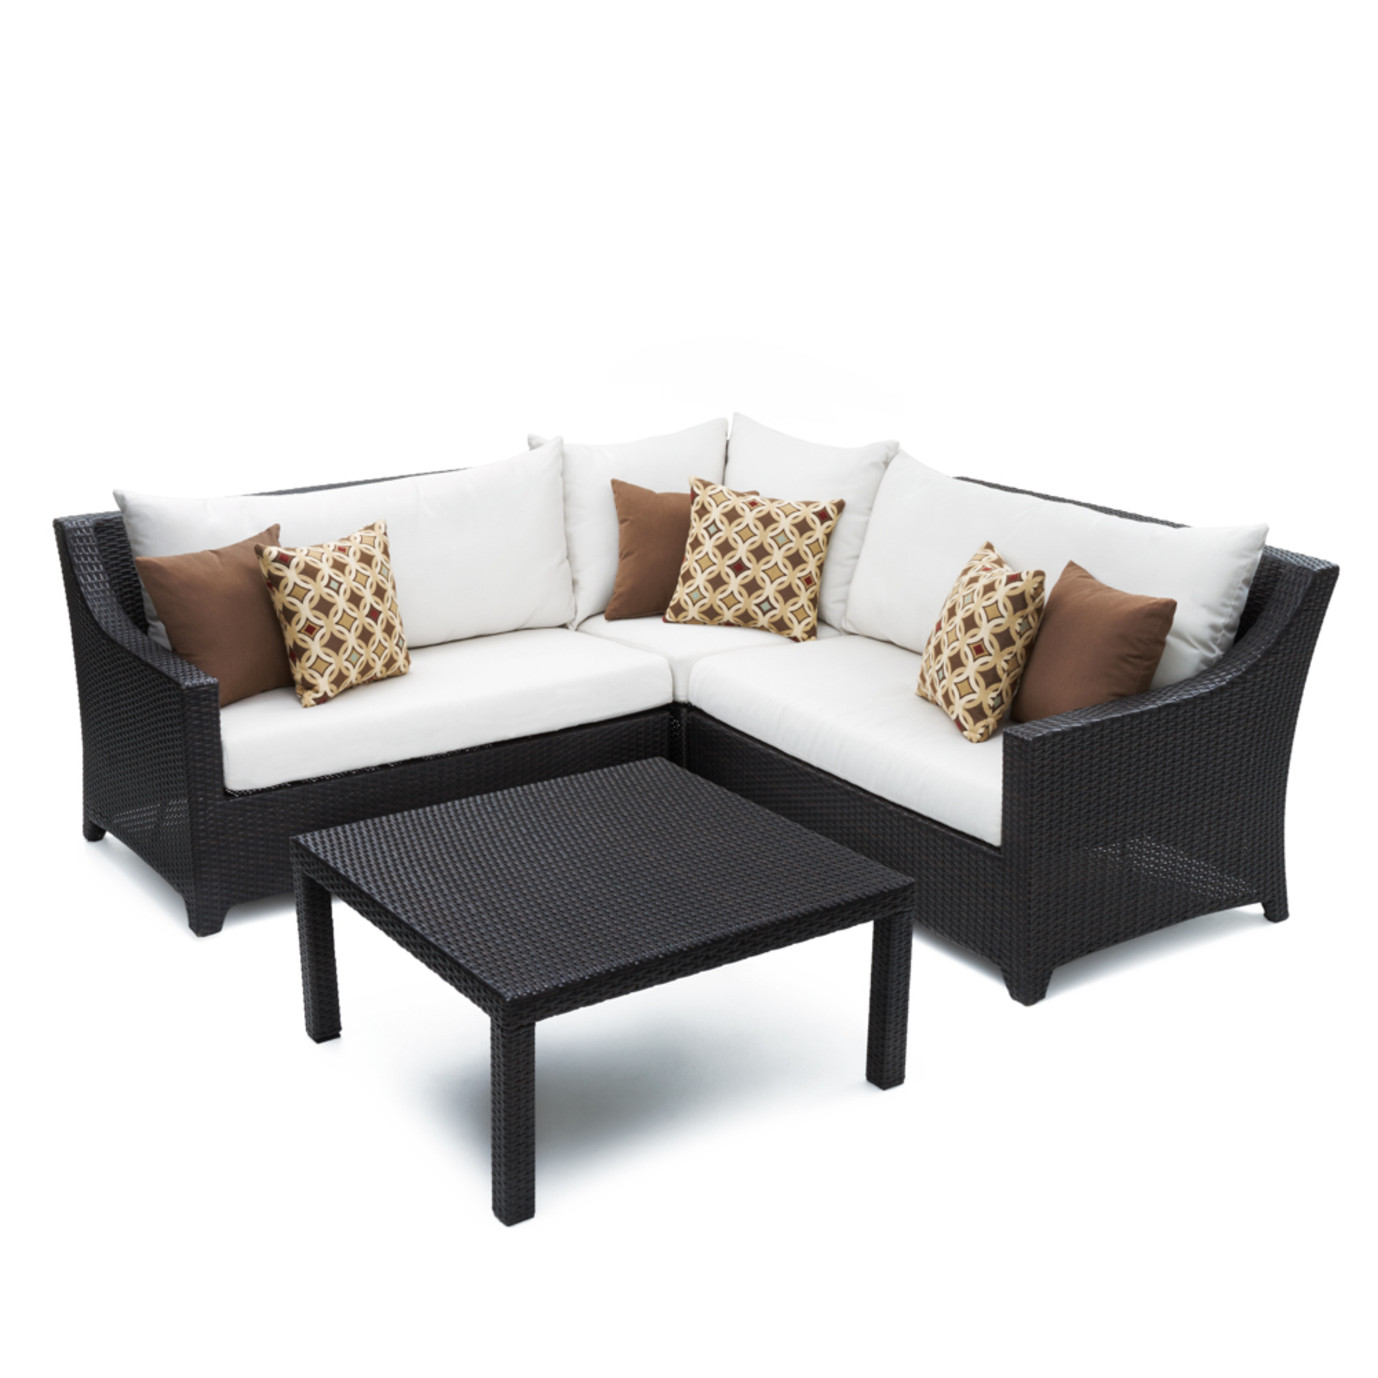 Deco™ 4pc Sectional and Table - Moroccan Cream